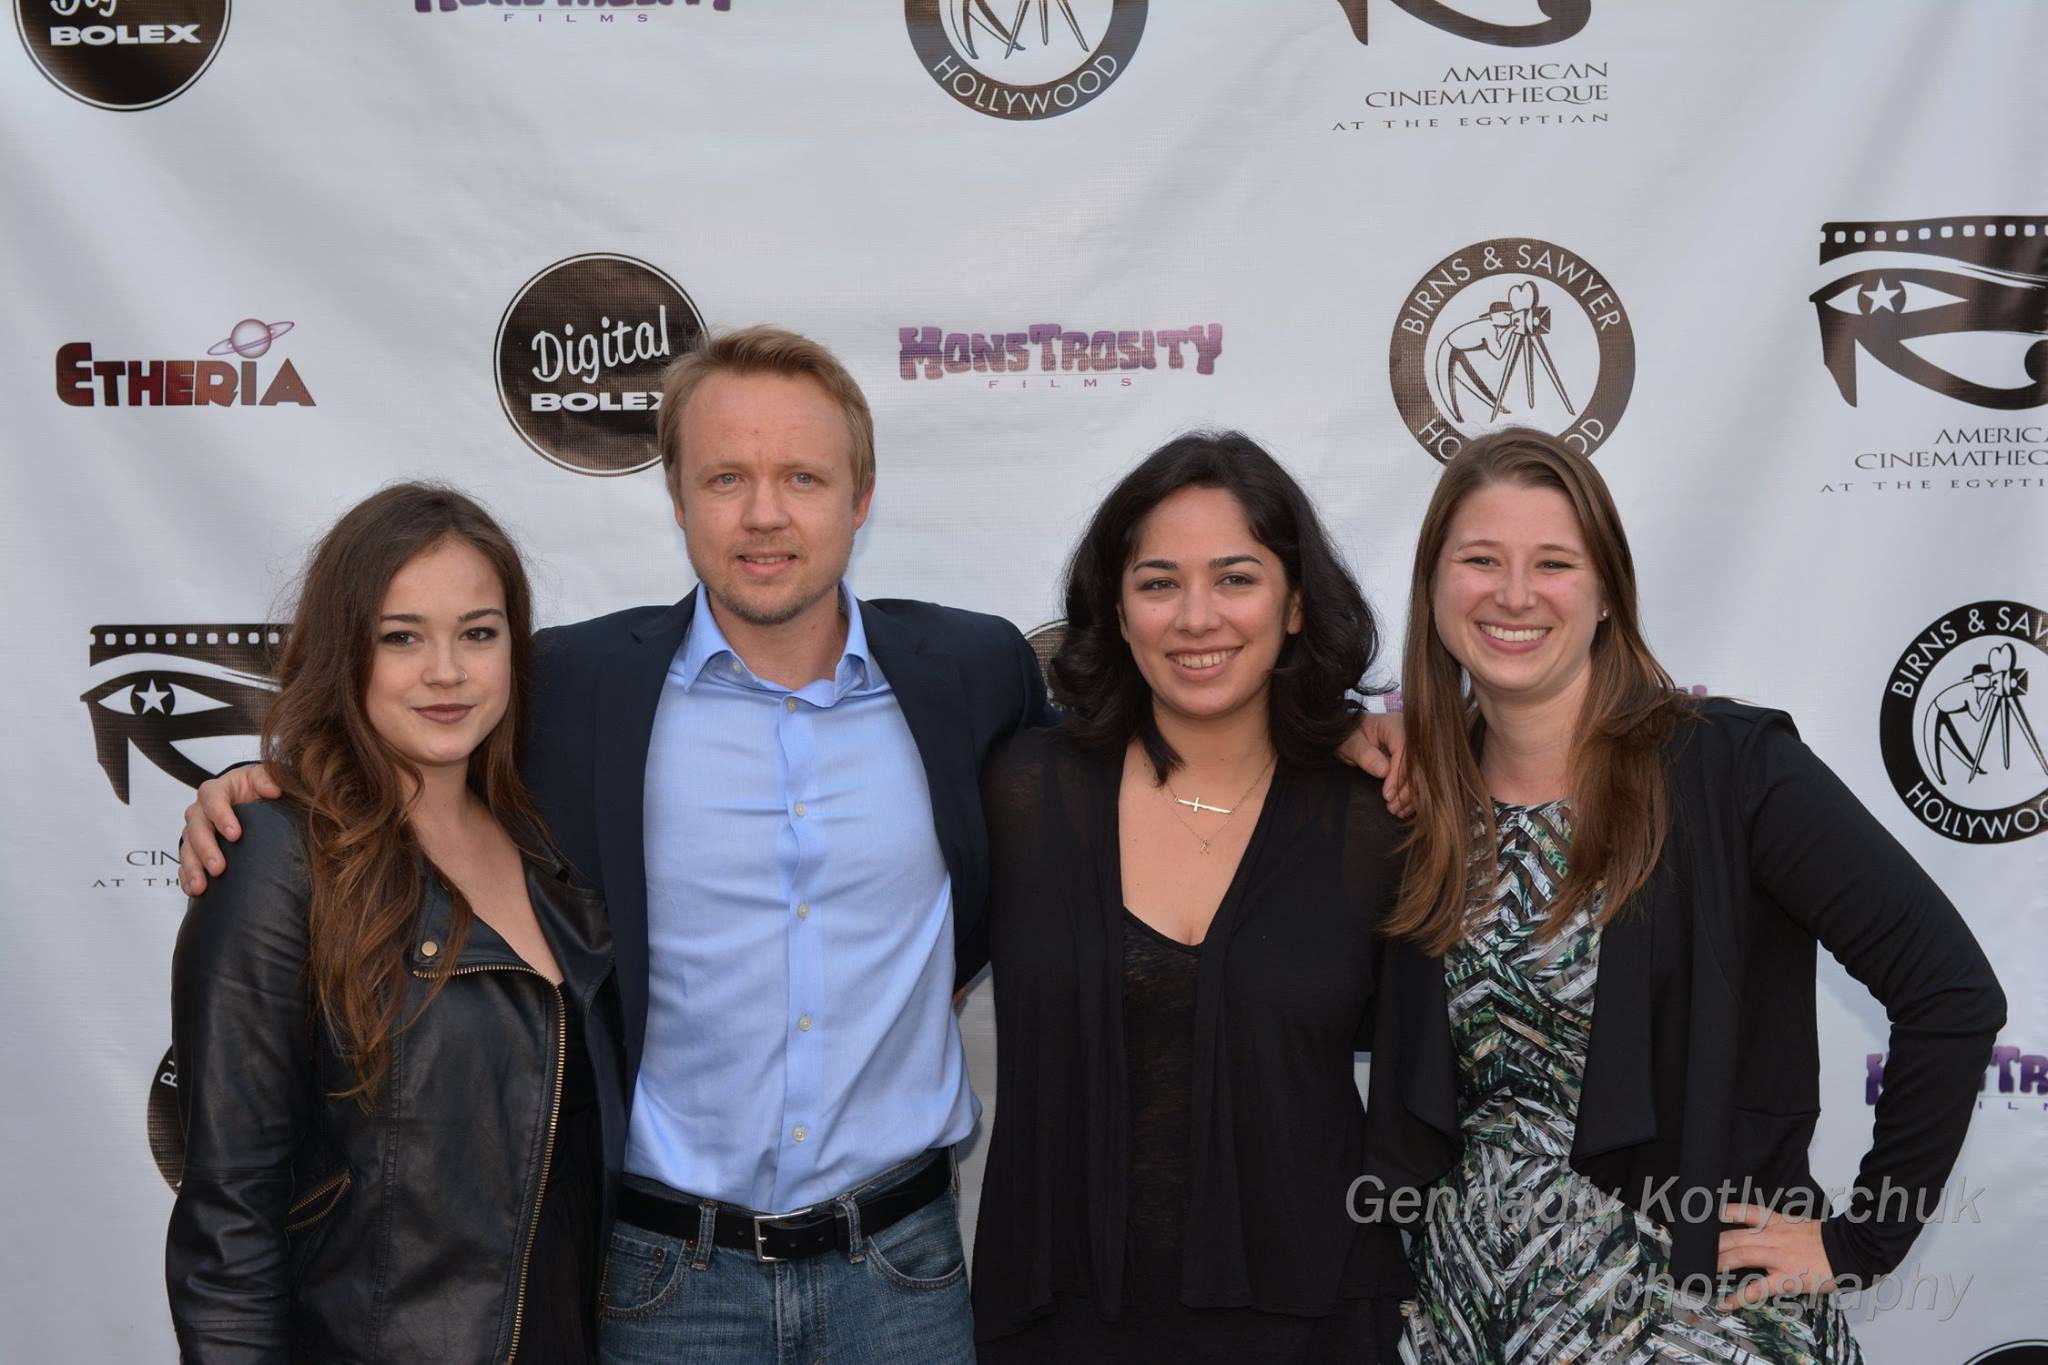 Audience Award-winner SLUT's cast members Molly McIntyre and James Gallo, pose with director Chloe Okuno and producer Lisa Gollobin at Etheria Film Night 2015